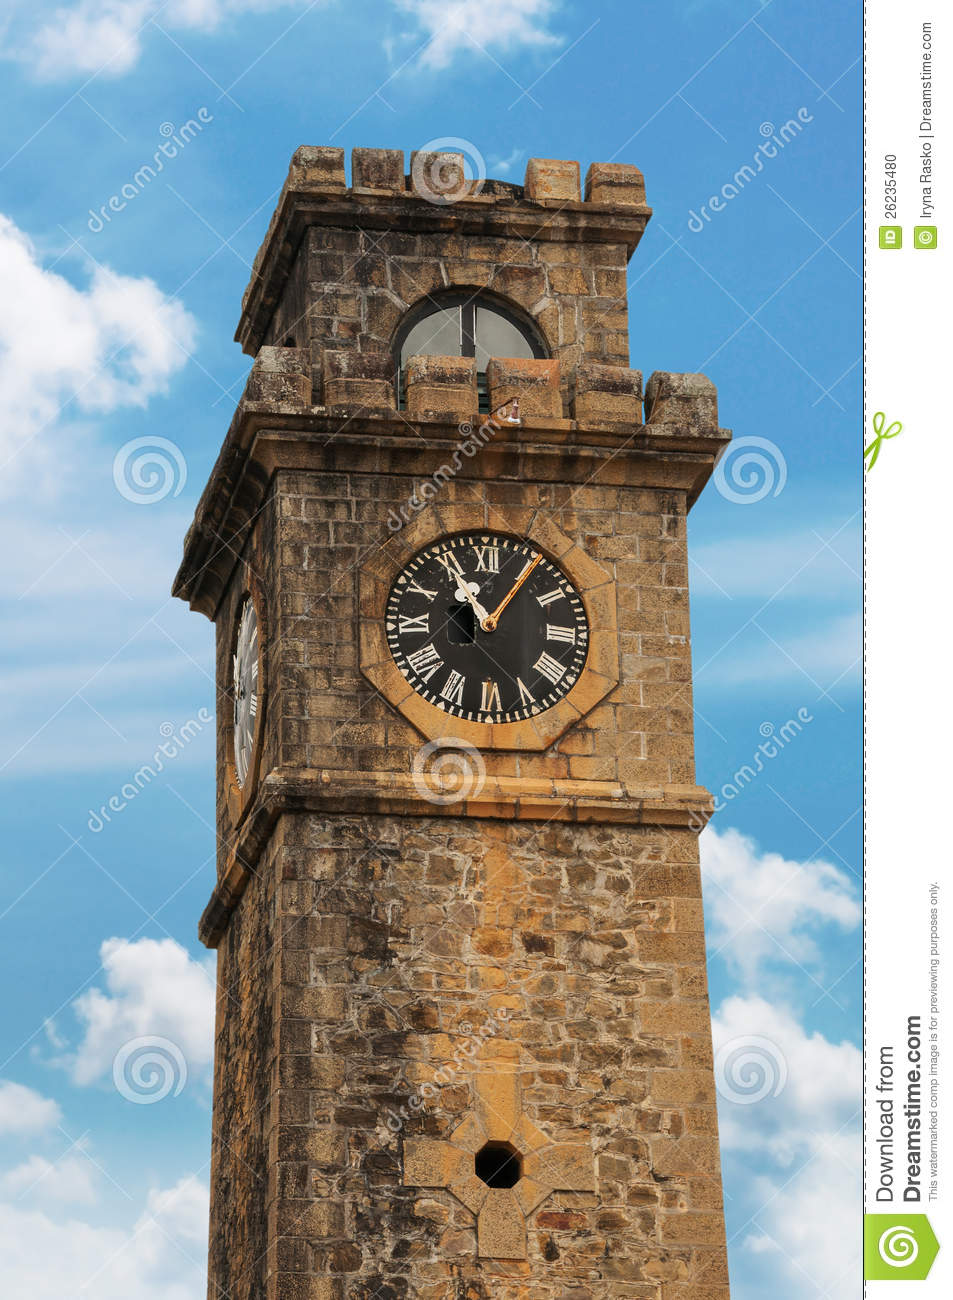 Old Clock Tower Stock Photo Image 26235480